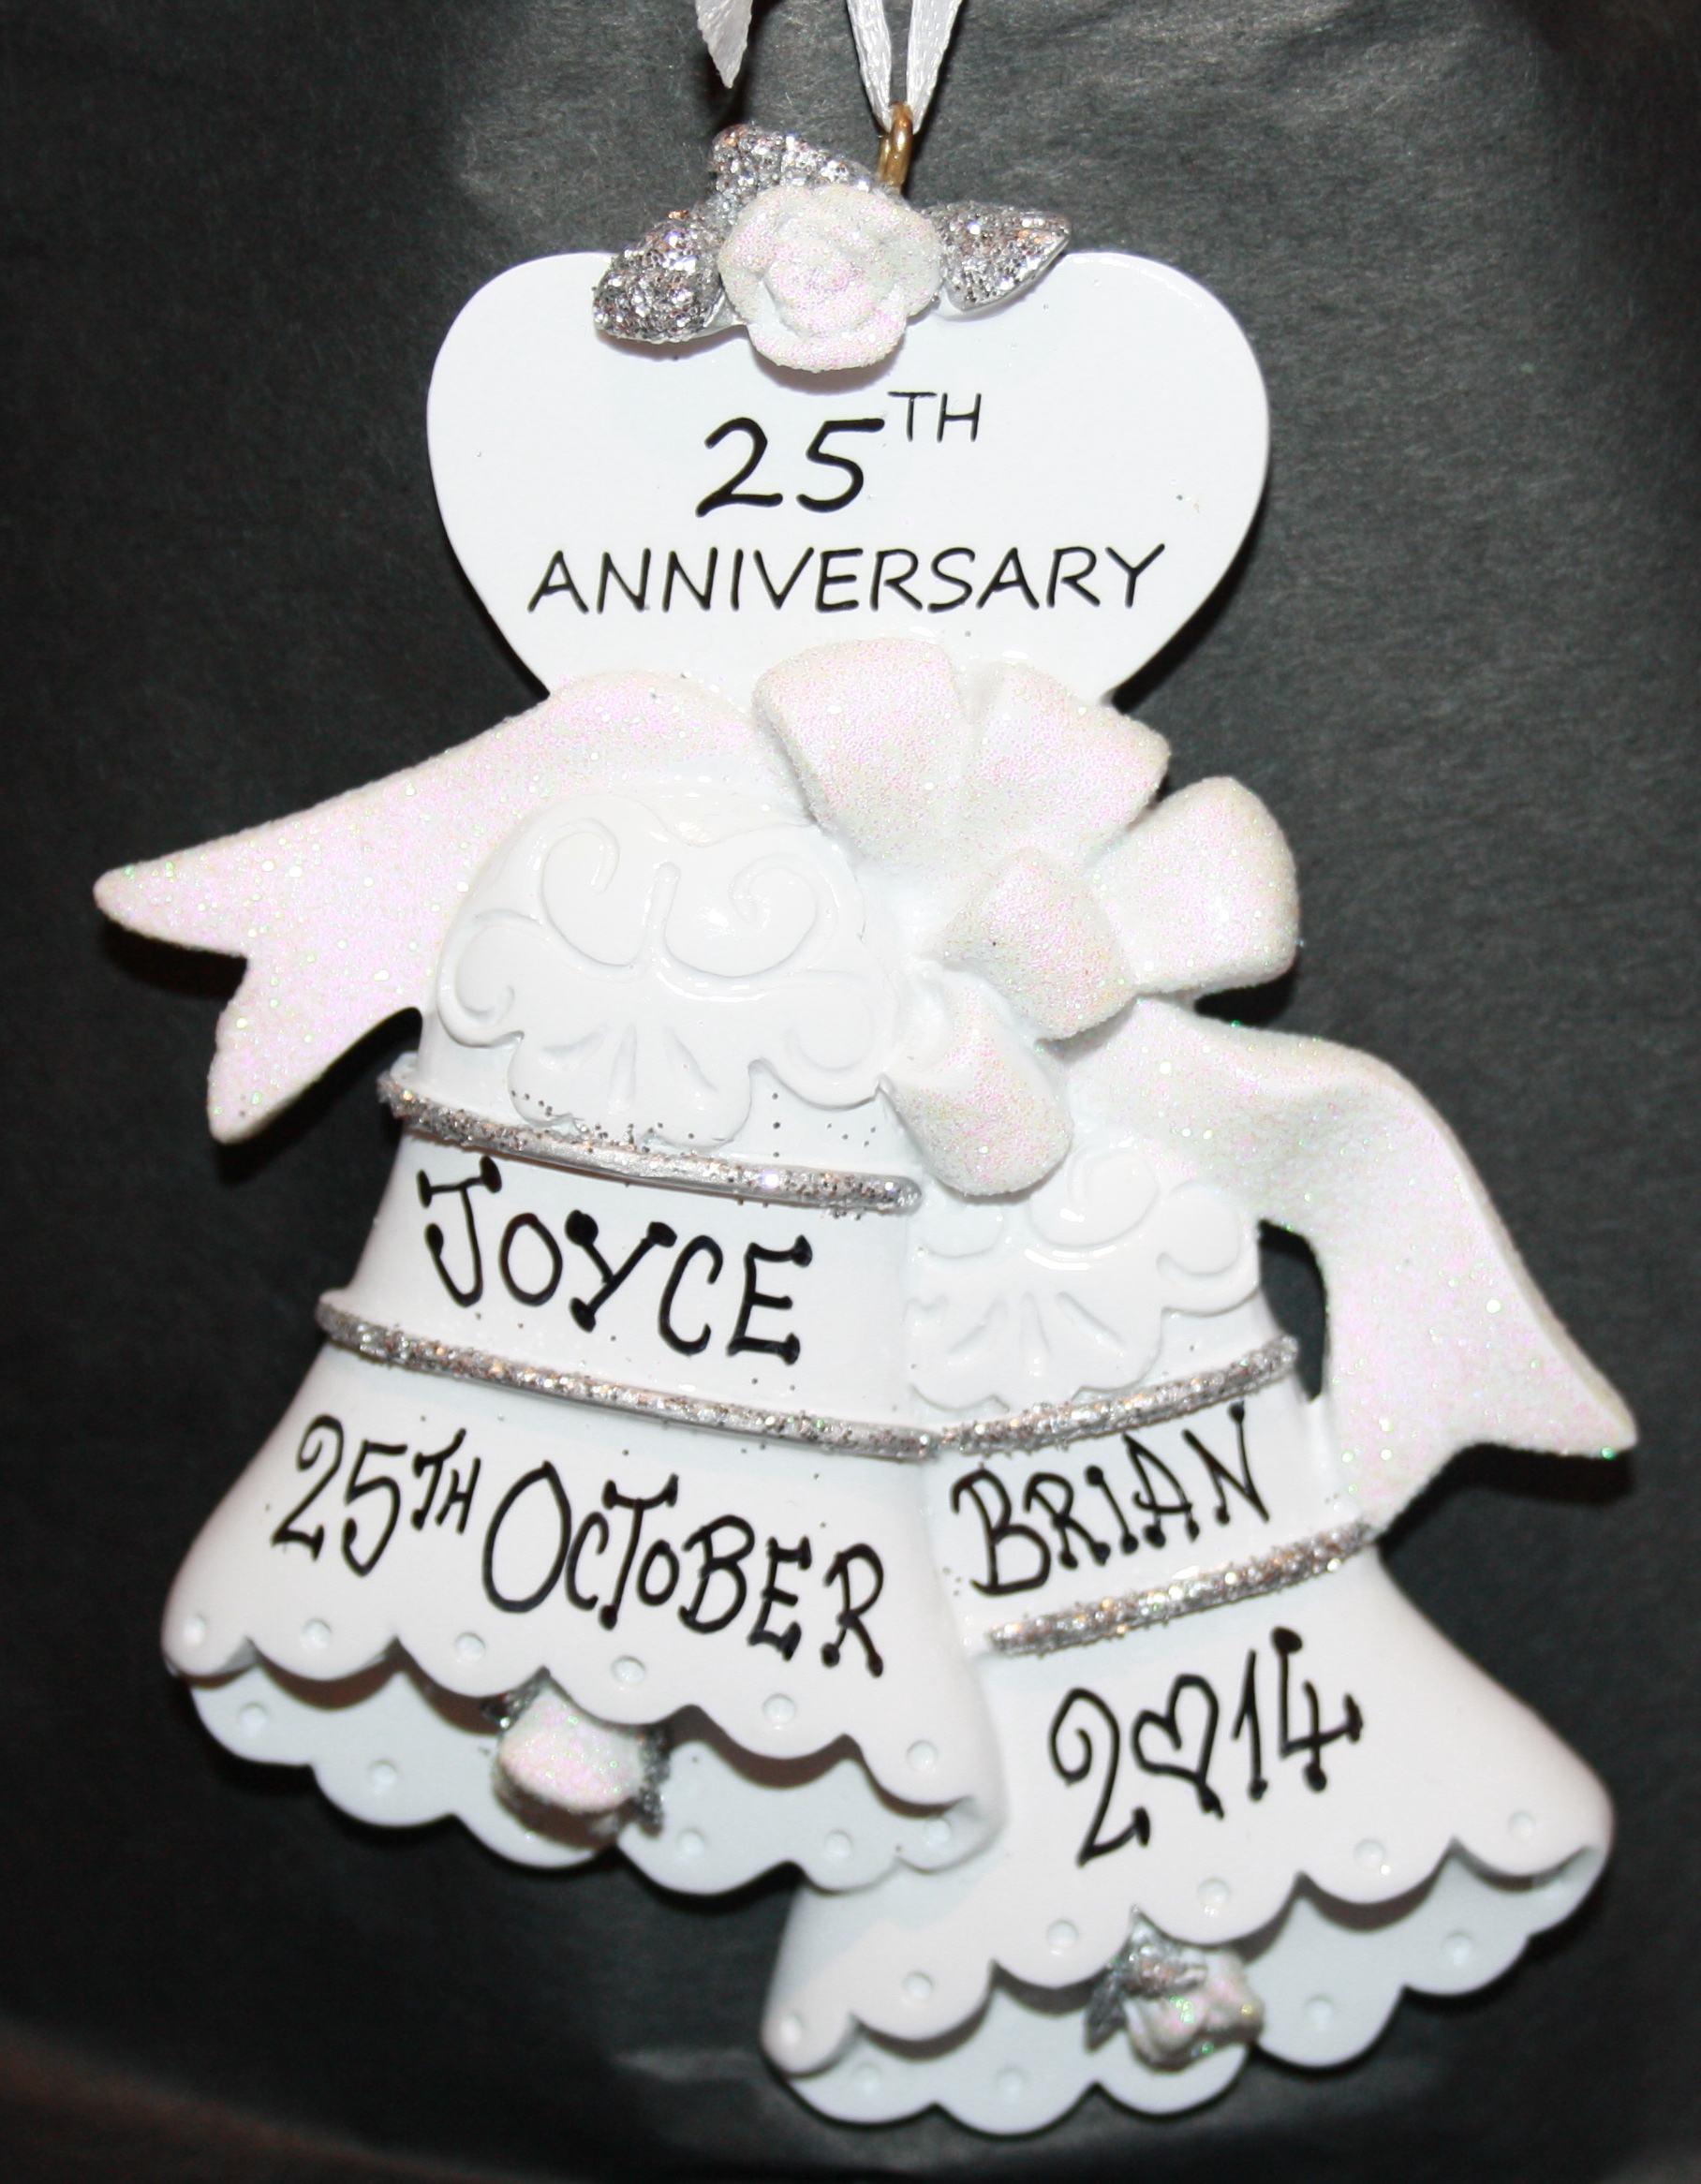 25th anniversary bells delightful decorations for 25 year anniversary decoration ideas